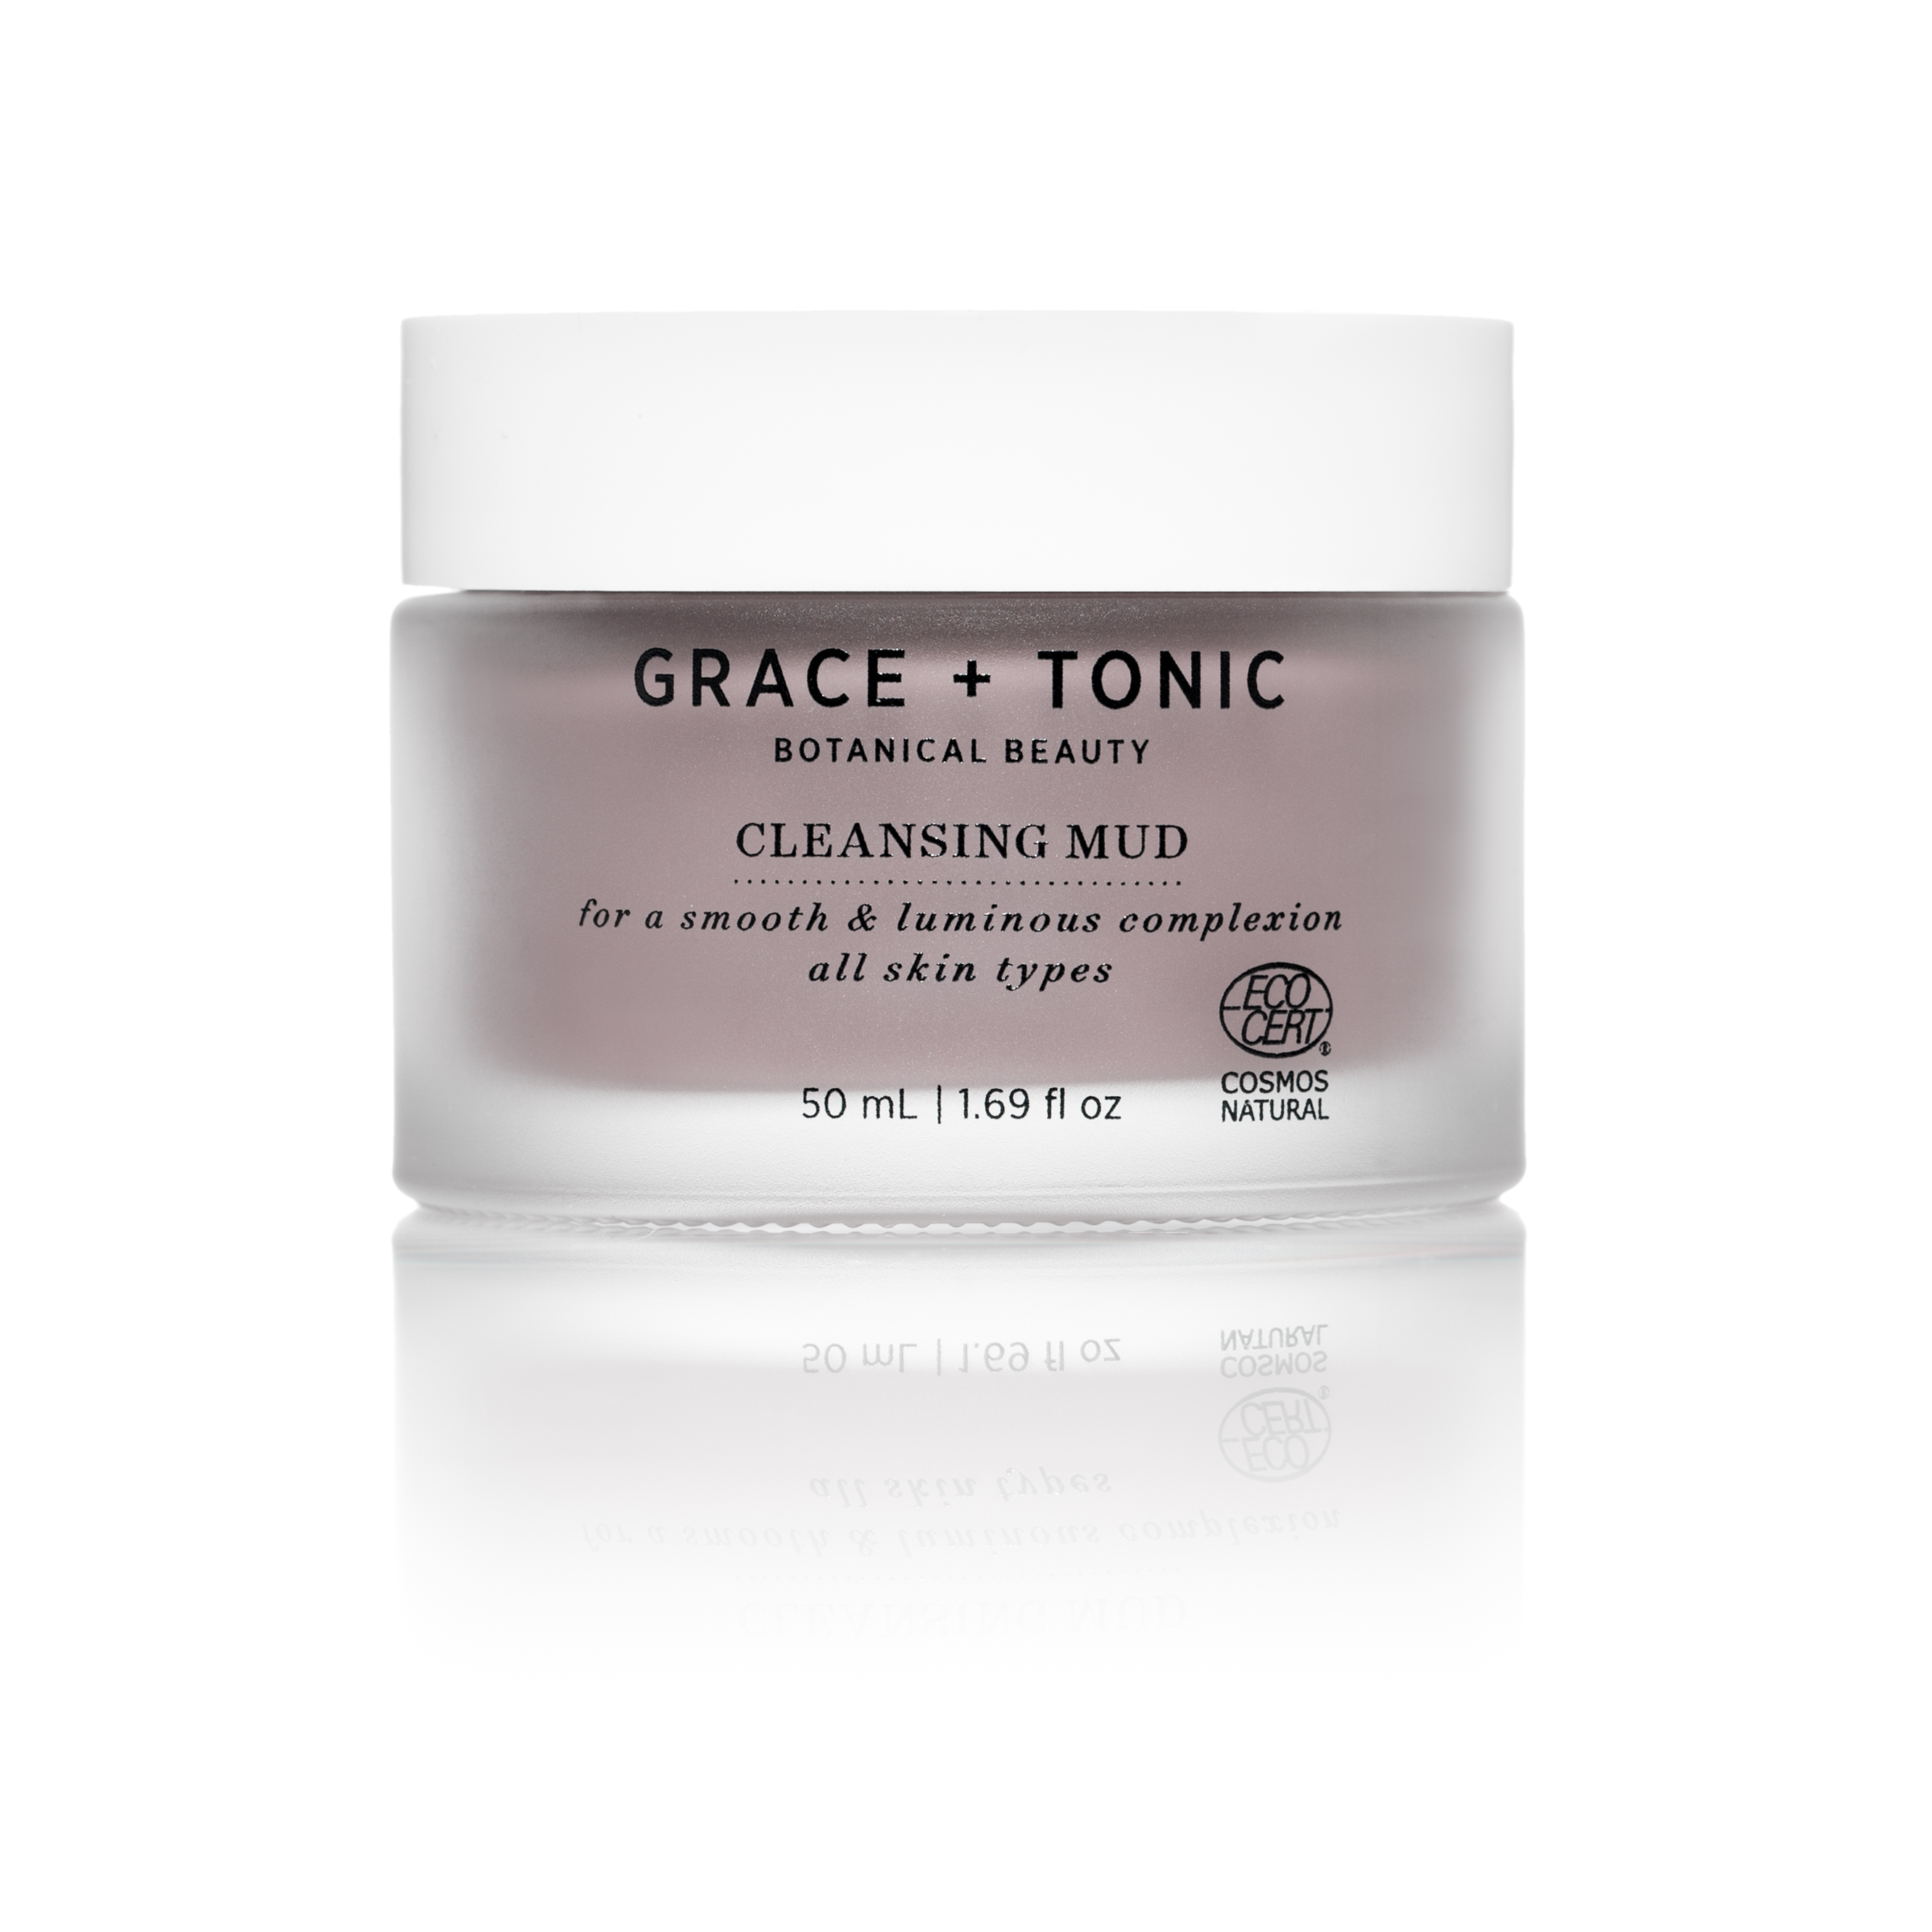 Grace + Tonic Cleansing Mud will be sold at Target.